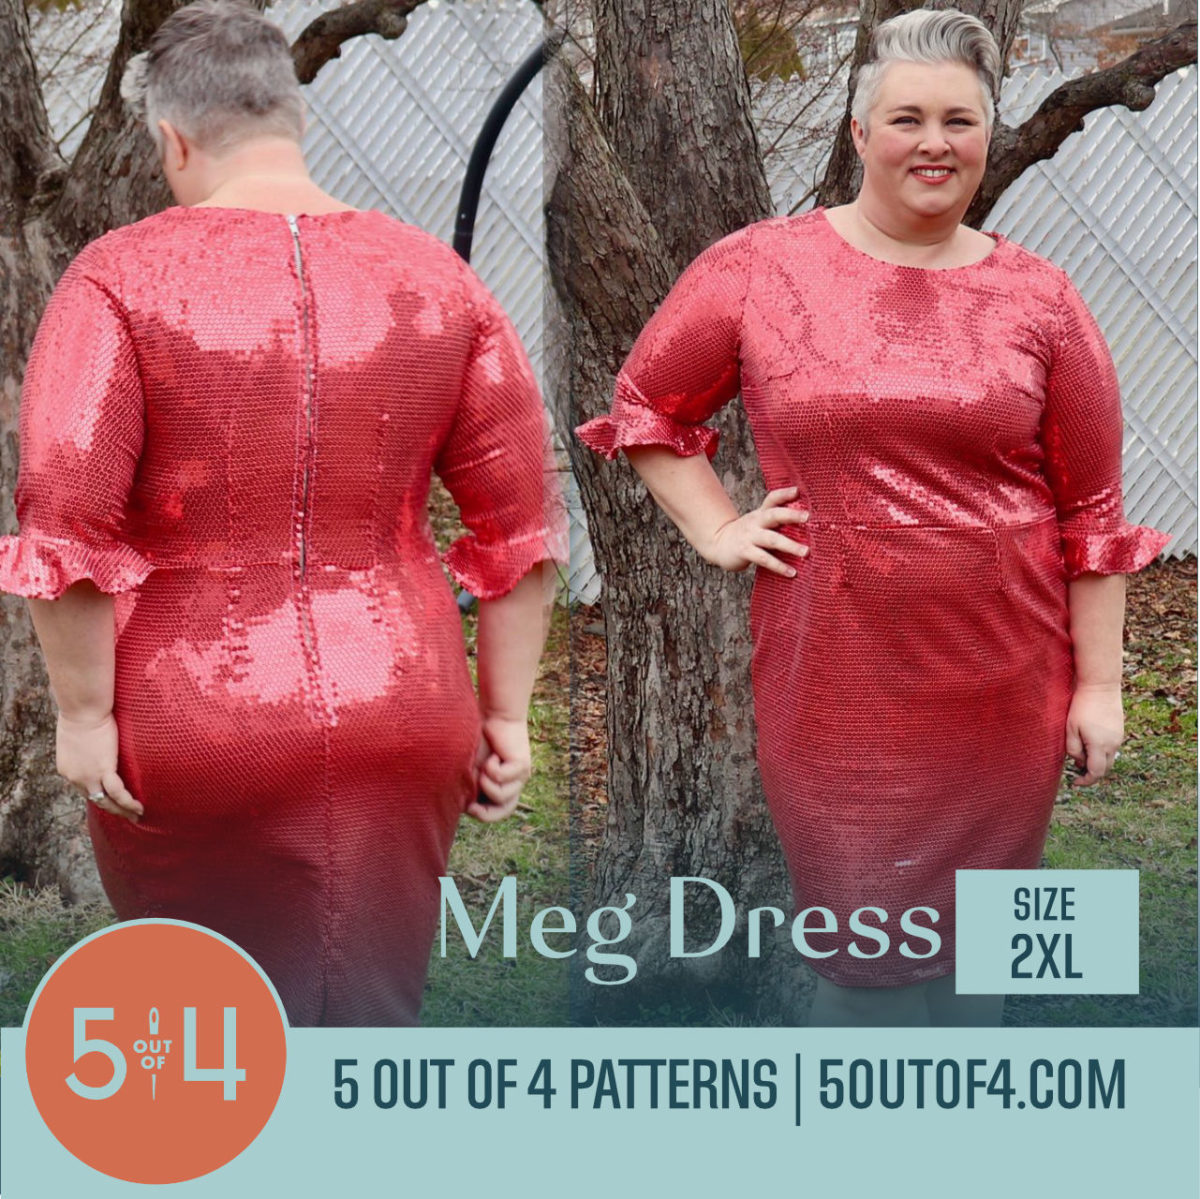 Meg Dress 2xl Tea Length